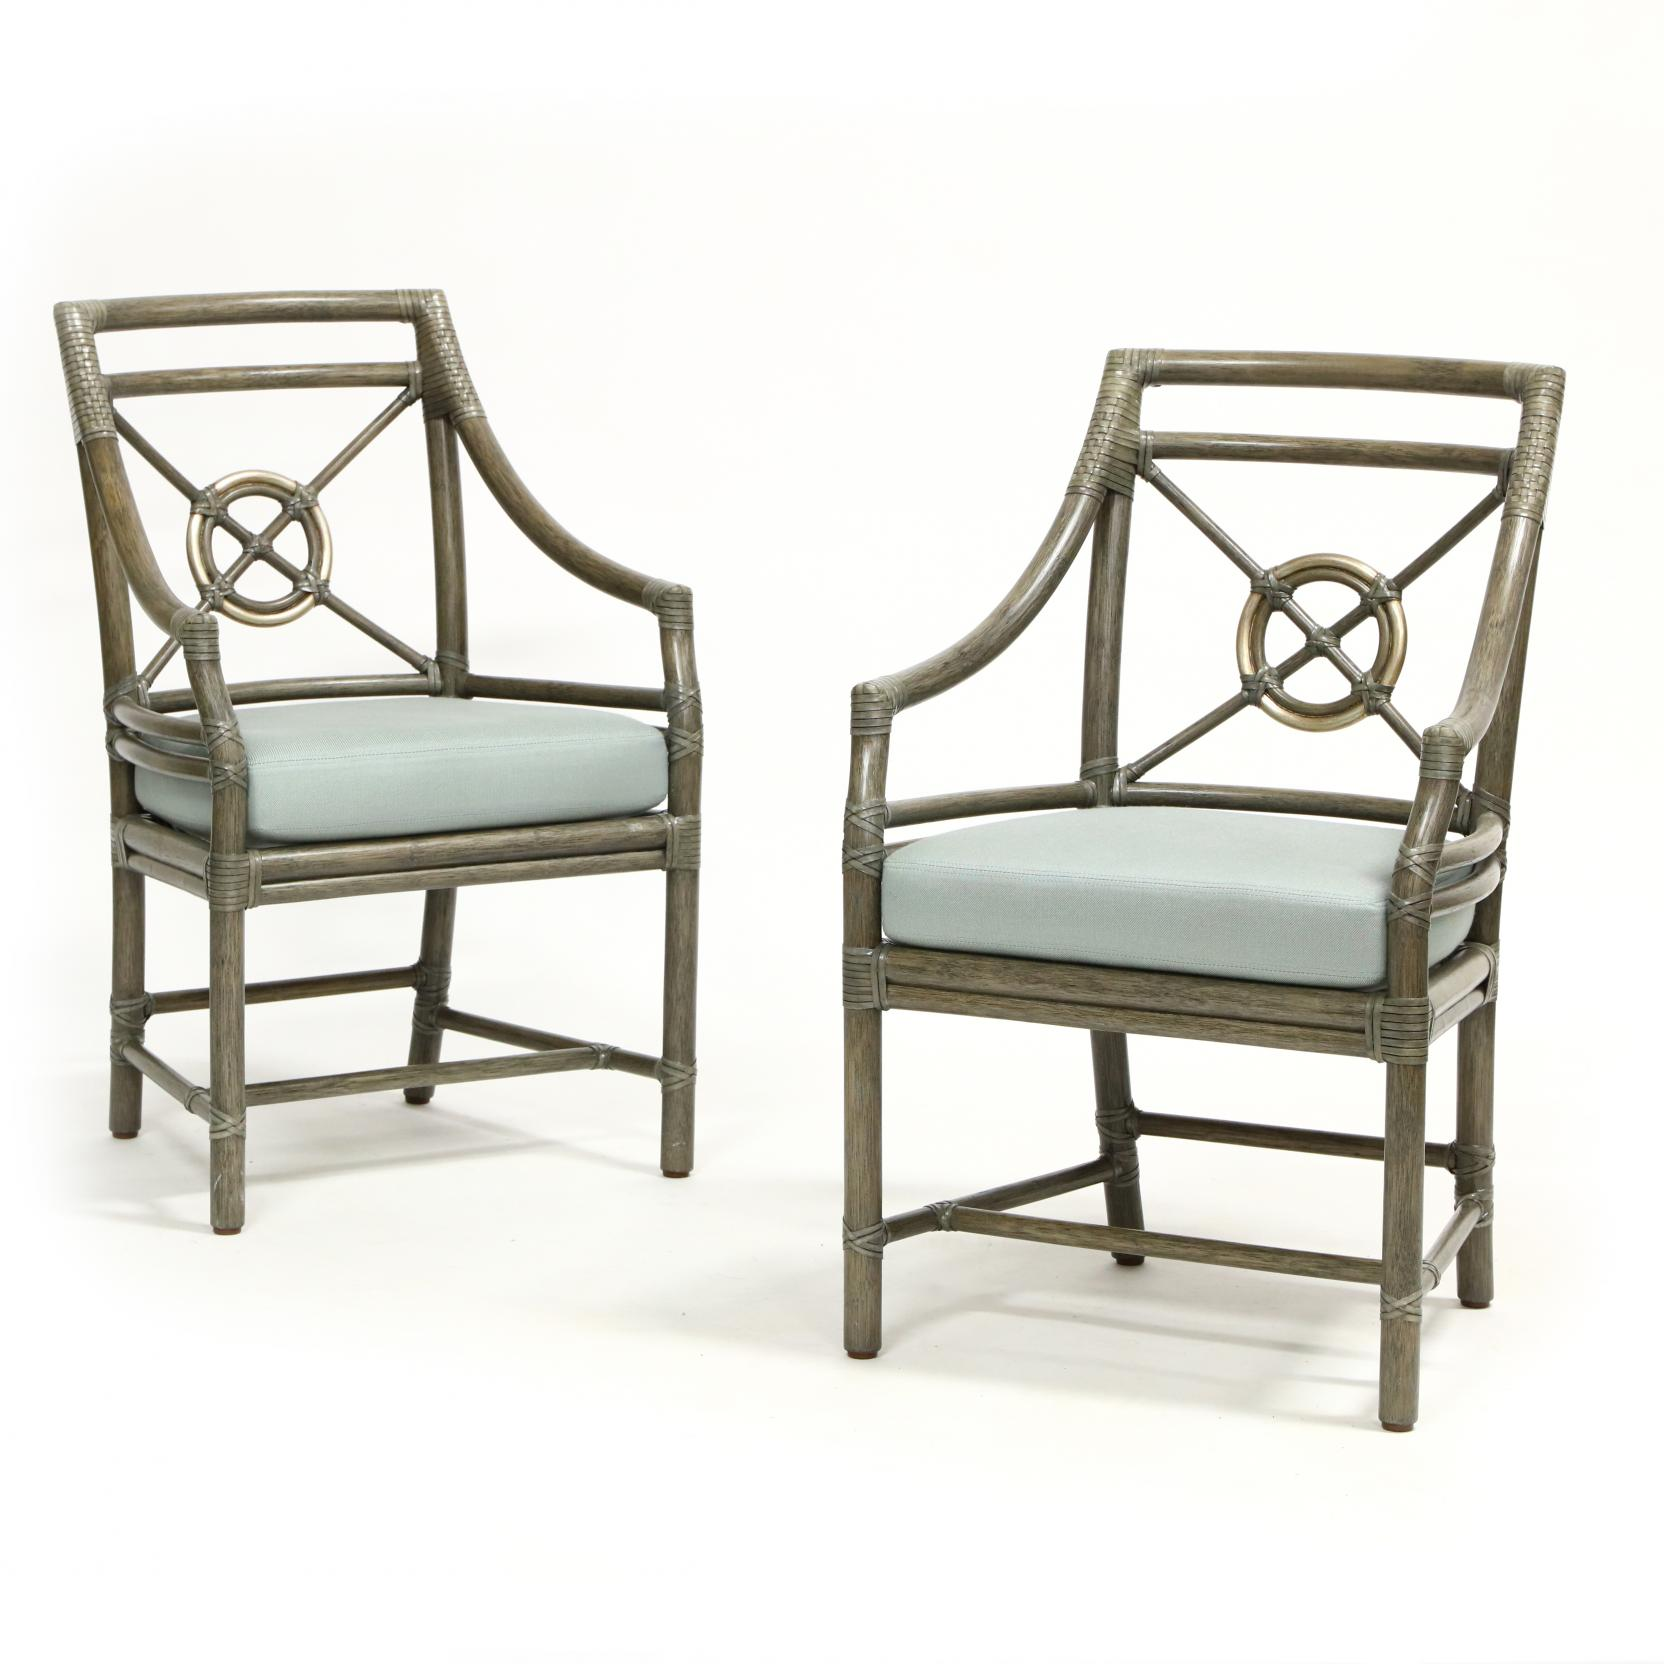 mcguire-pair-of-rattan-armchairs